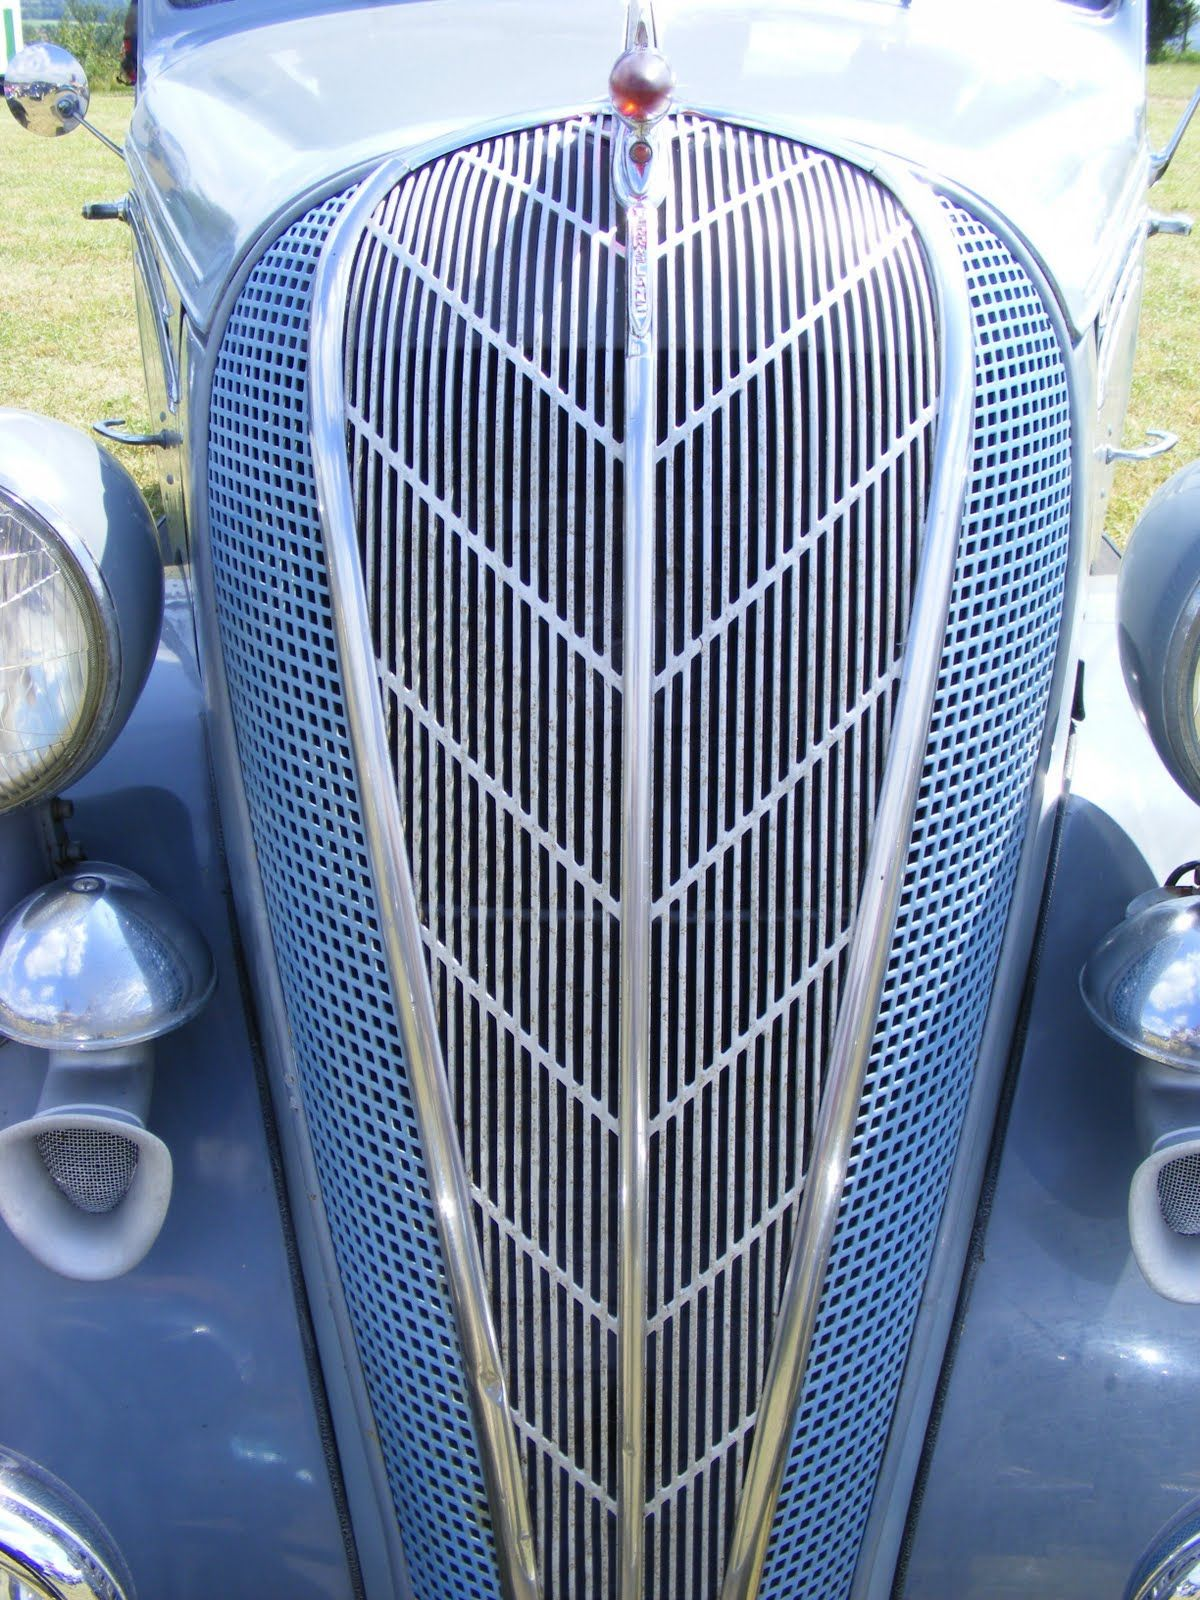 pin on classic automobiles pin on classic automobiles